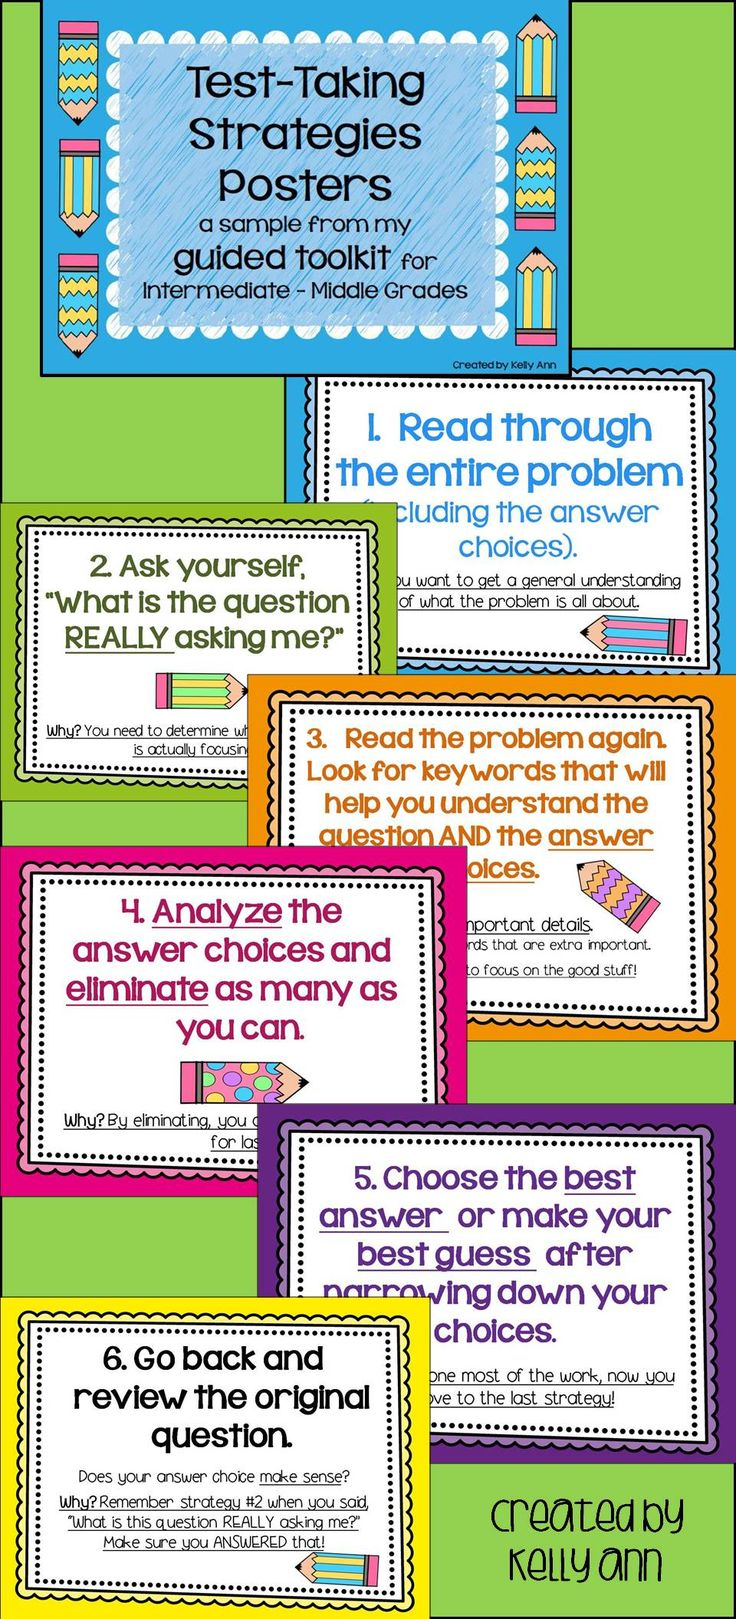 FREE TEST-TAKING STRATEGIES POSTERS for Intermediate-Middle grades! Please see my Test-Taking Strategies Through Question of the Day Toolkit! I'm certain you won't regret it!